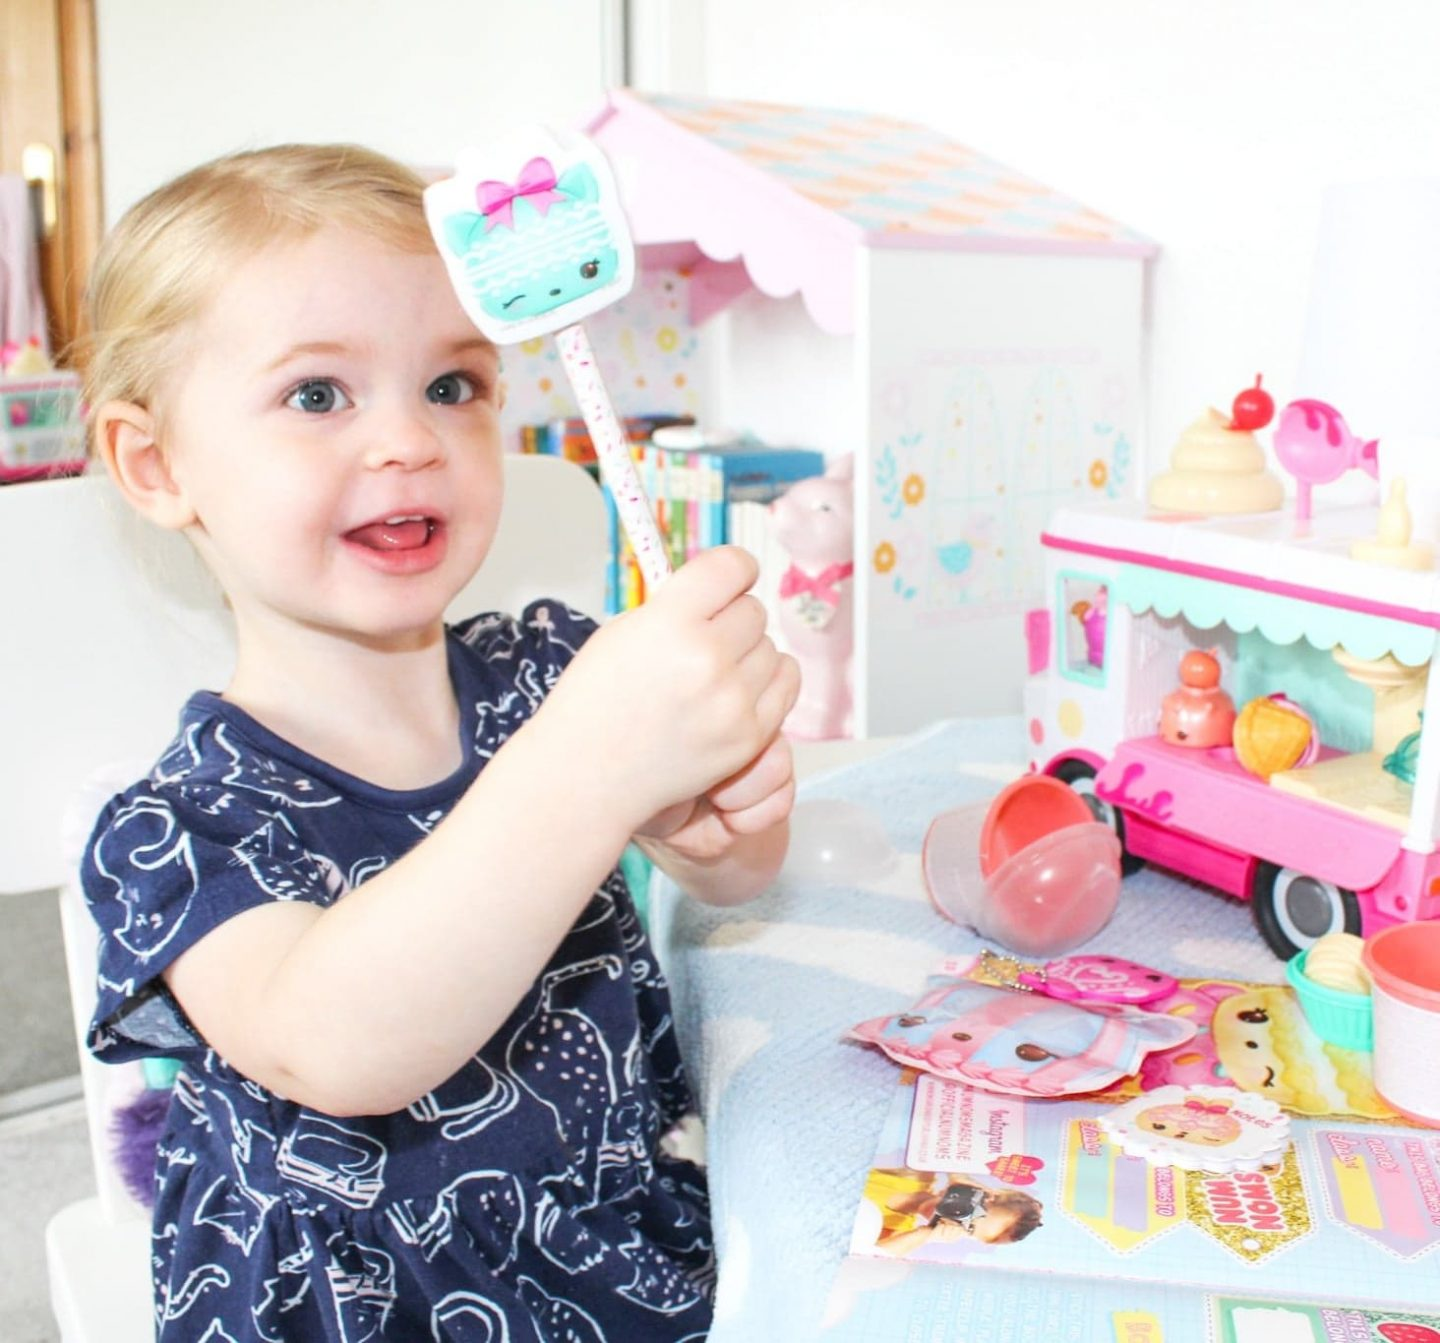 Welcome to the Adorable World of Num Noms | Glitter Lipgloss Truck Playset